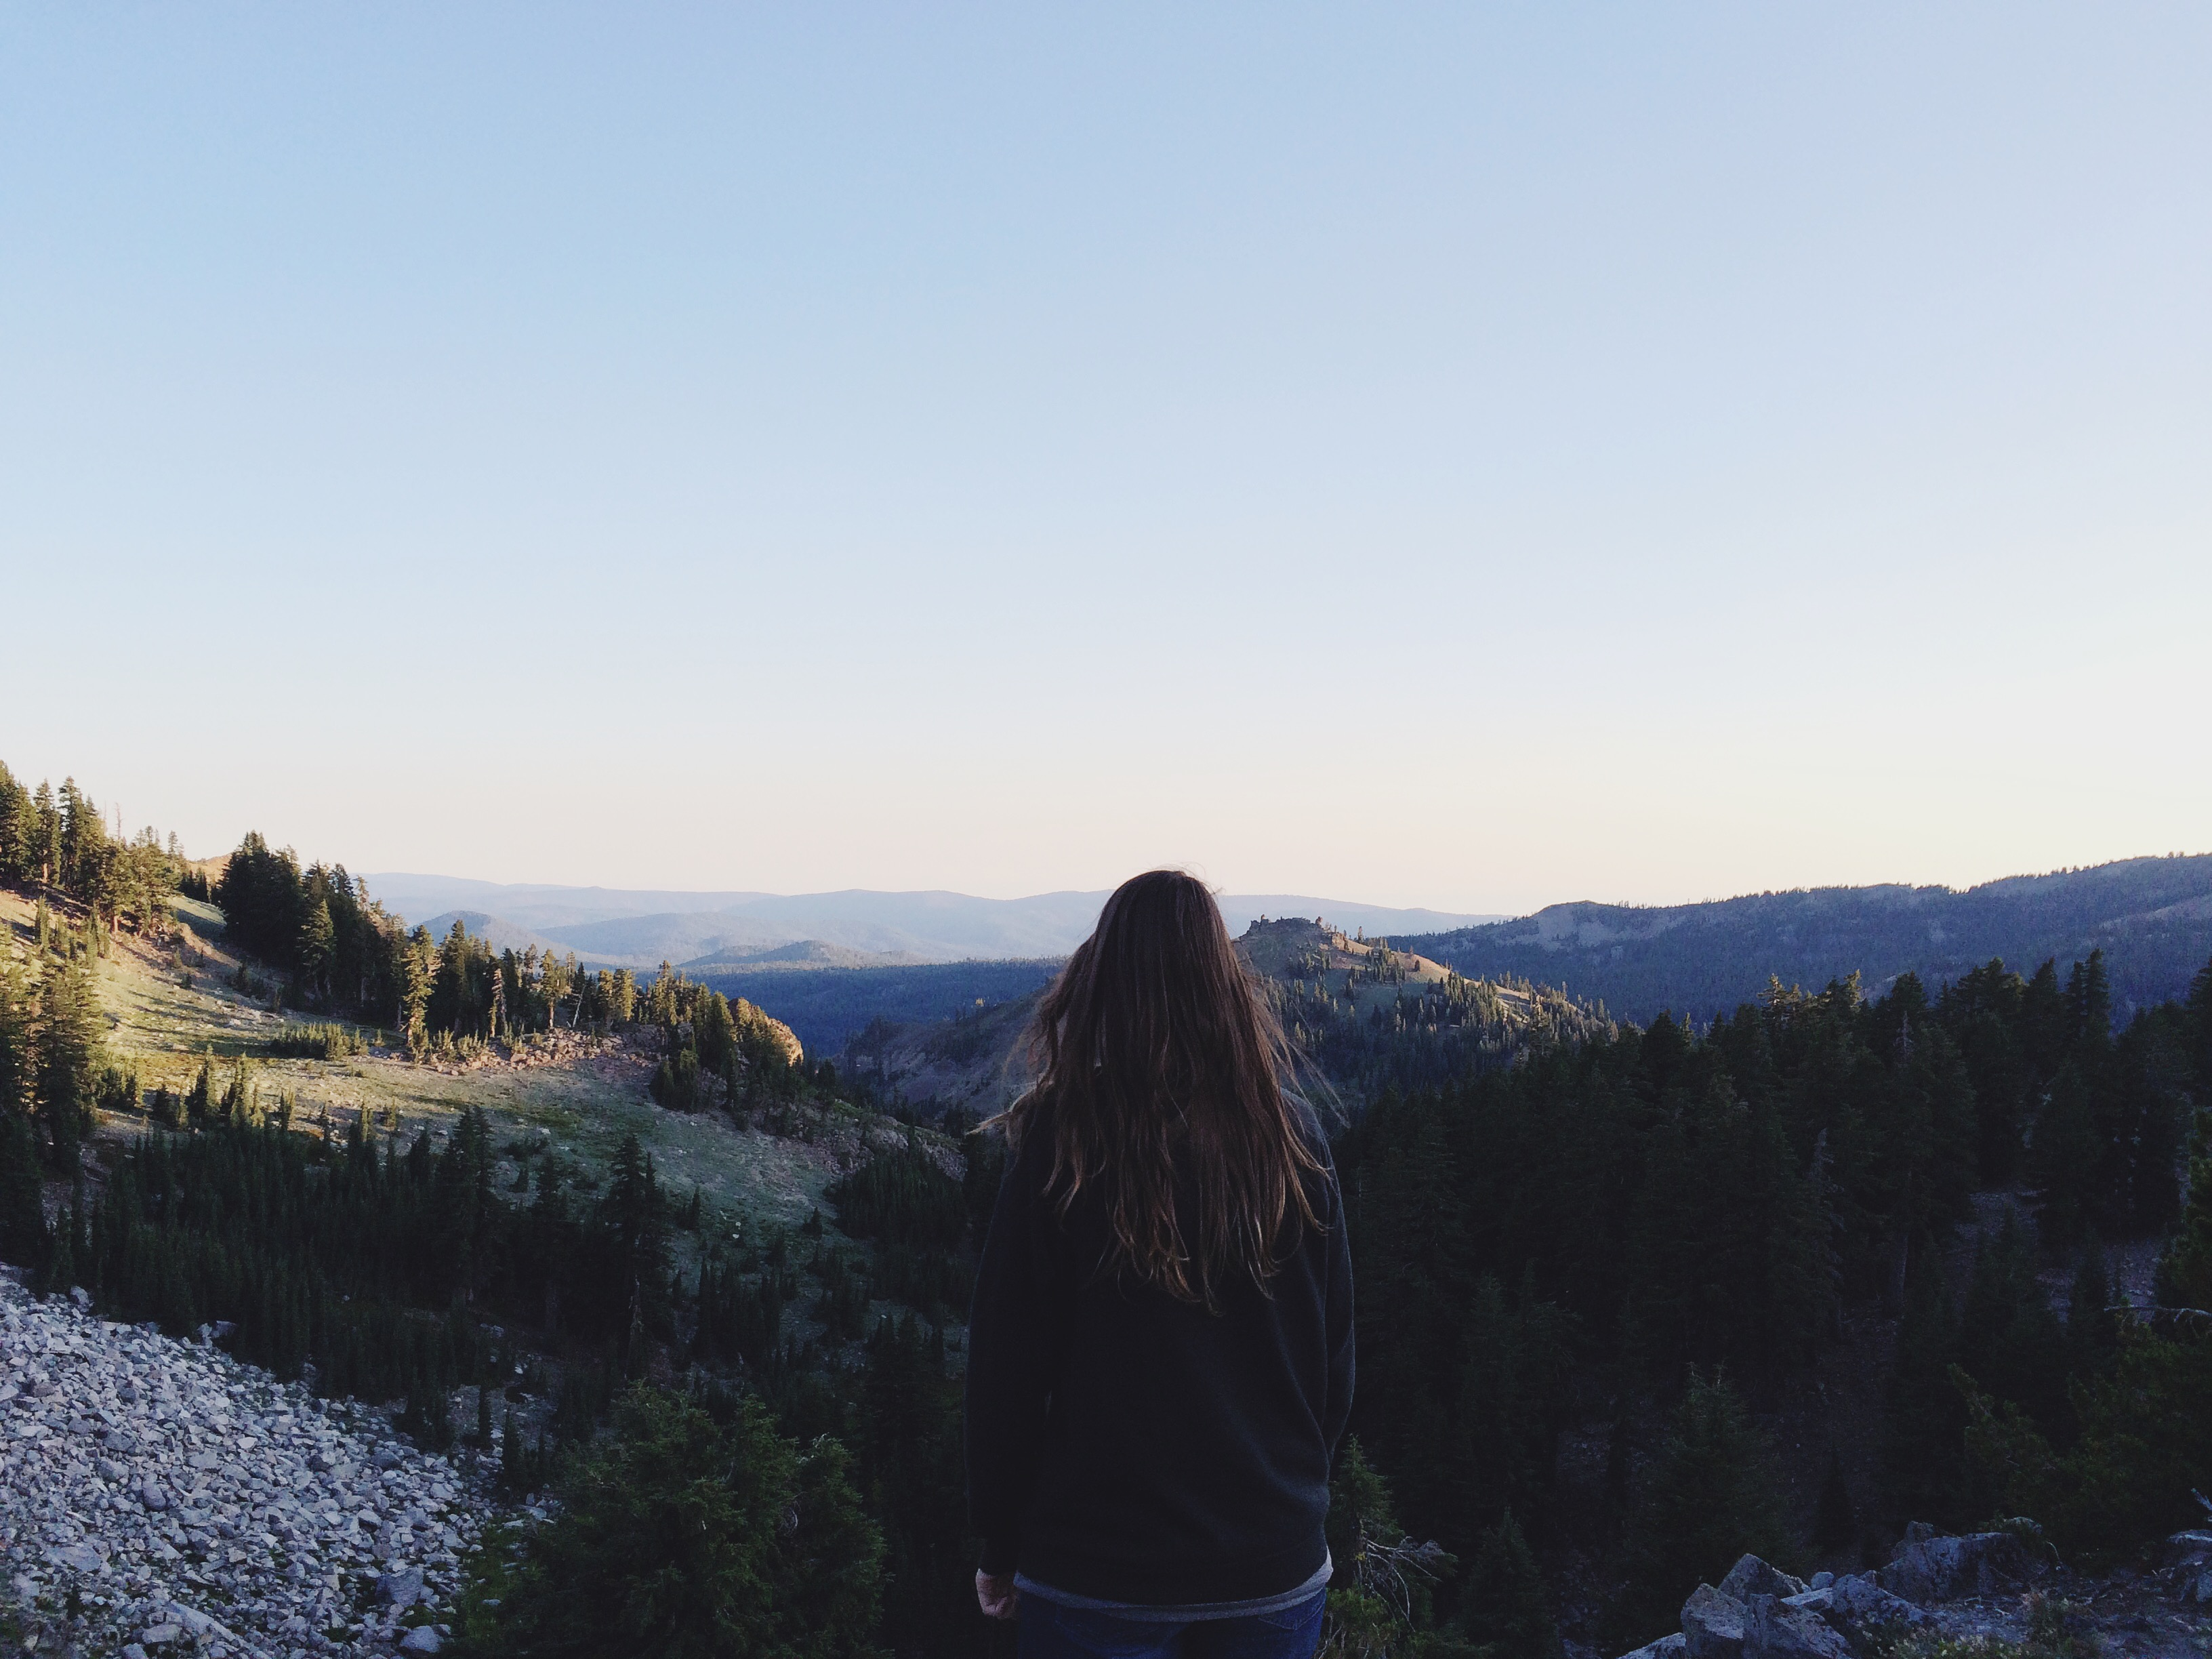 girl standing on cliff- overlooking mountain